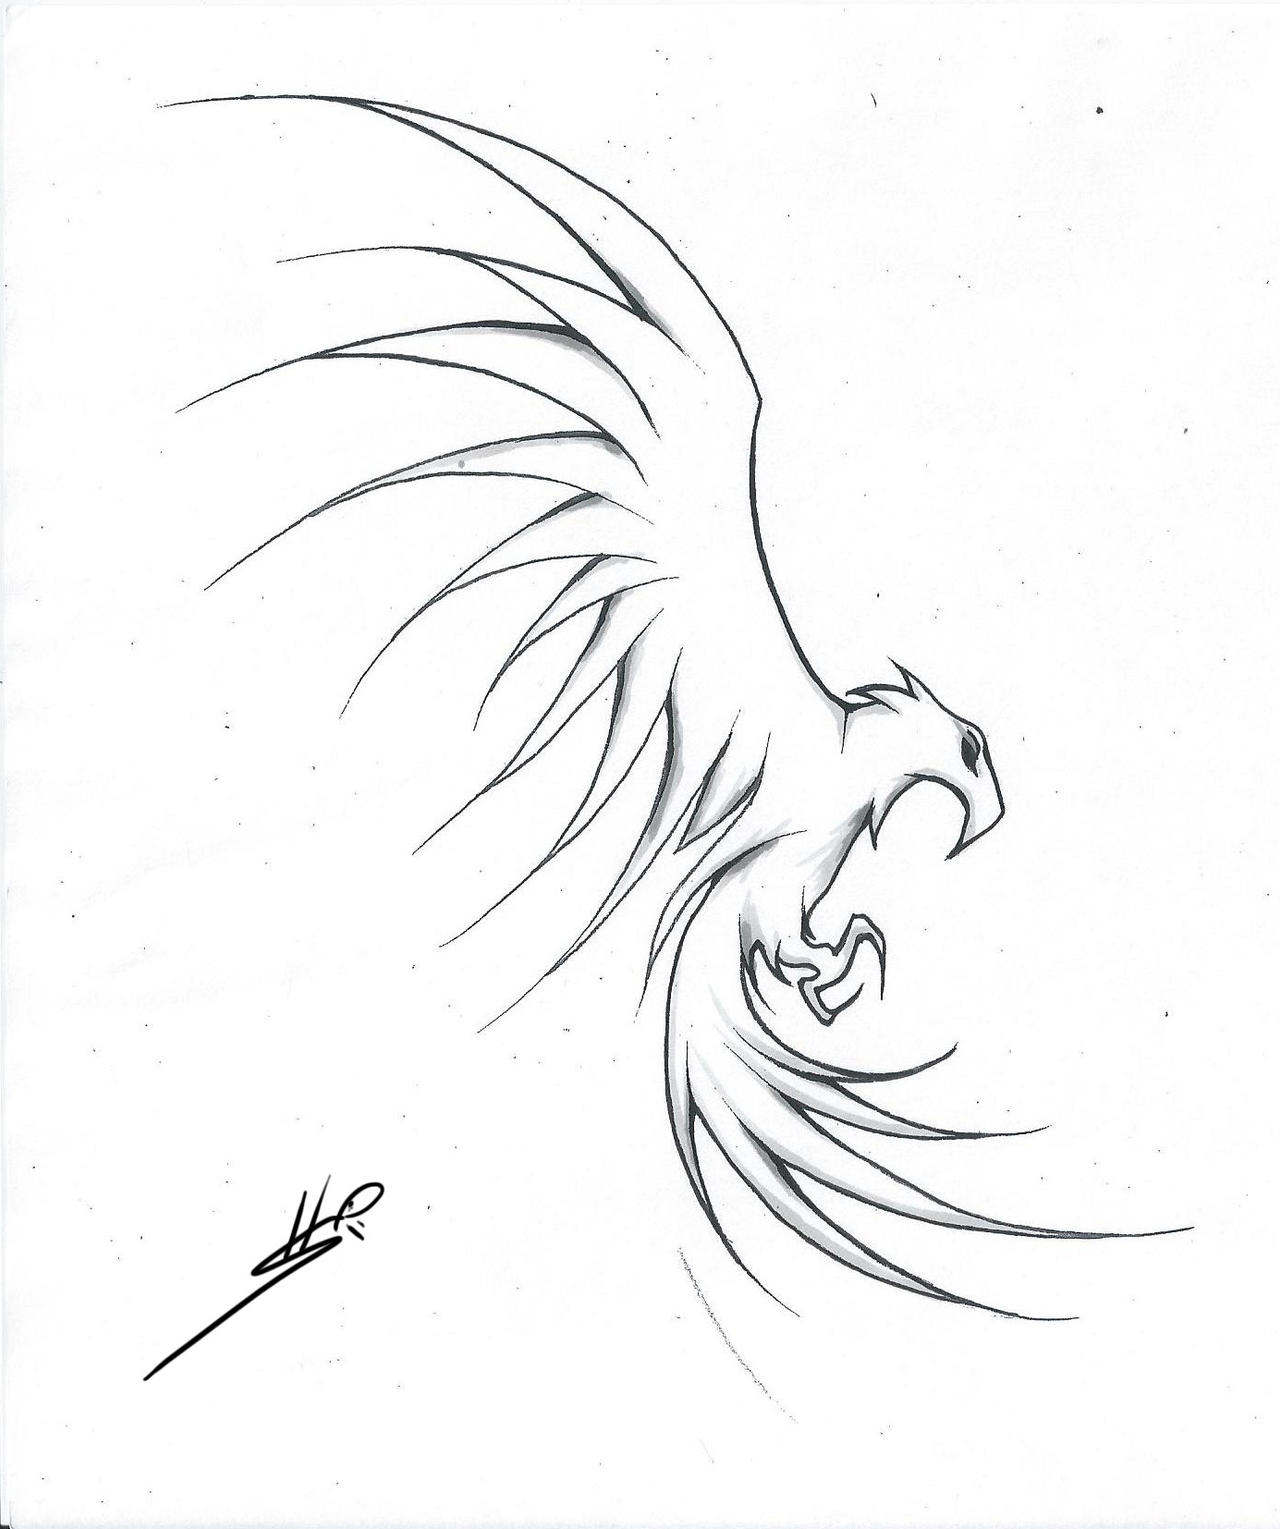 Drawing Smooth Lines In Flash : Tattoo flash eagle by roadkingin on deviantart